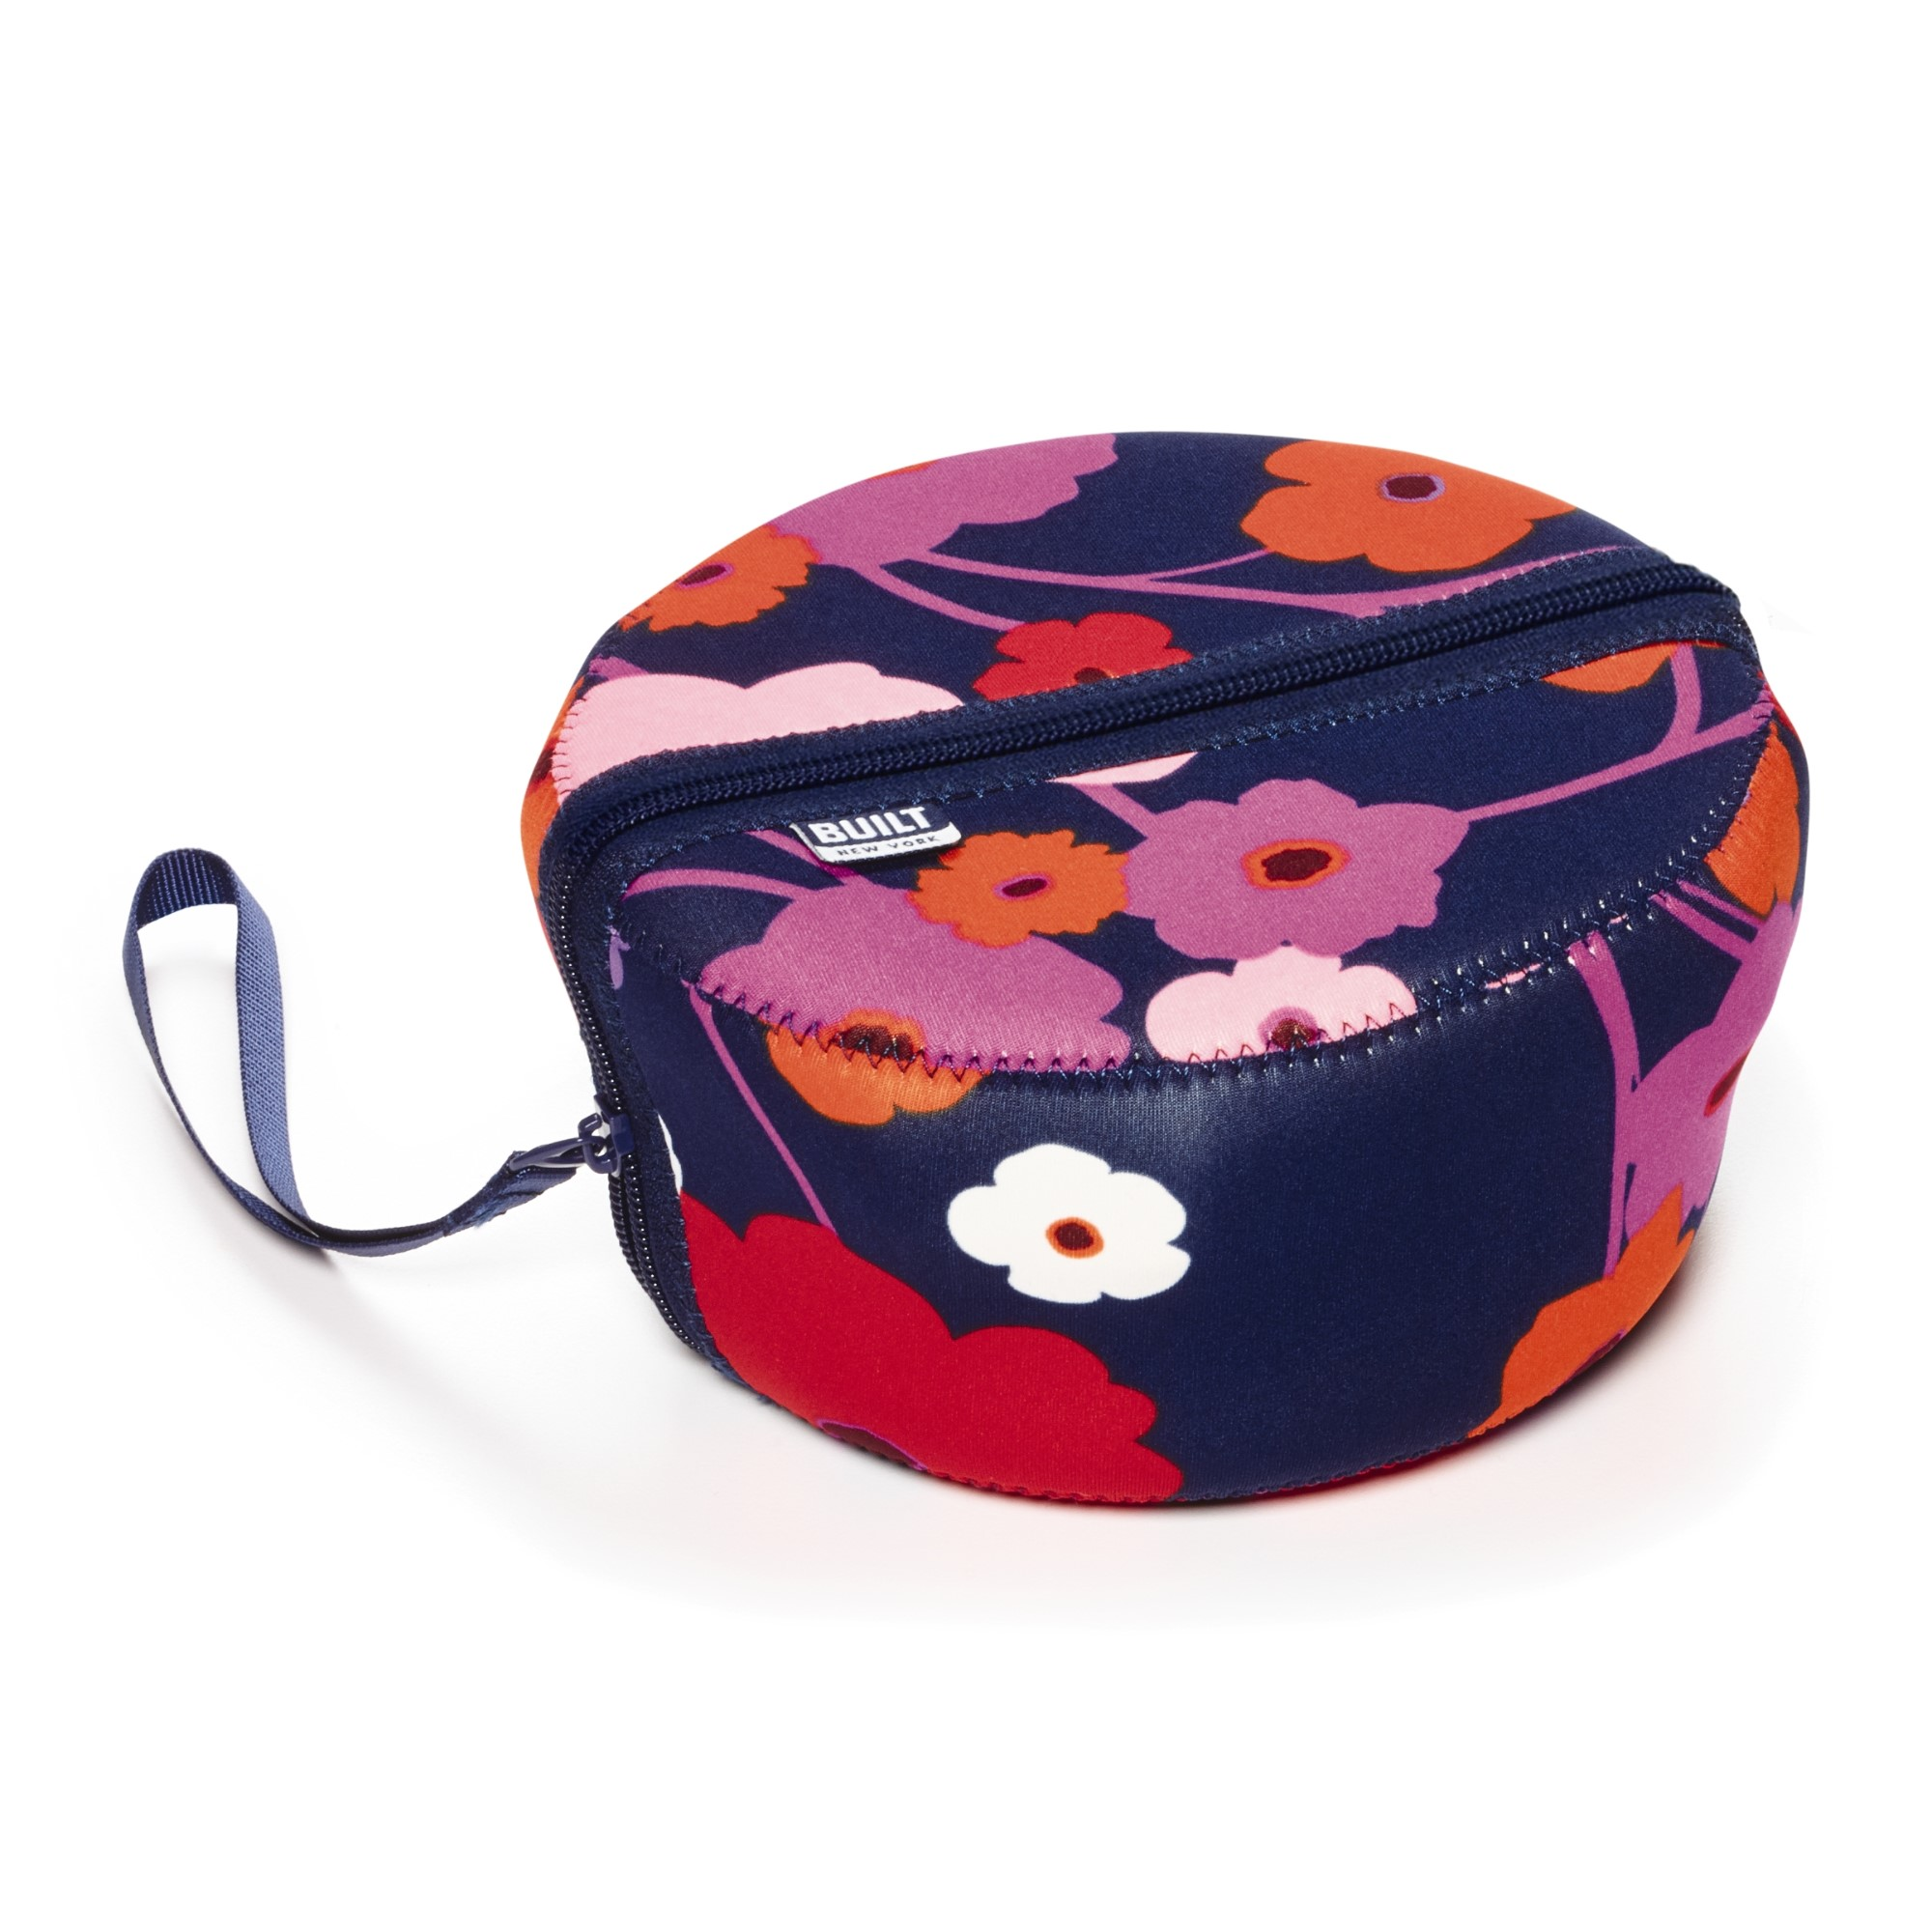 Built Bento Salad Bowl Container with Neoprene Sleeve Lush Flower by Lifetime Brands